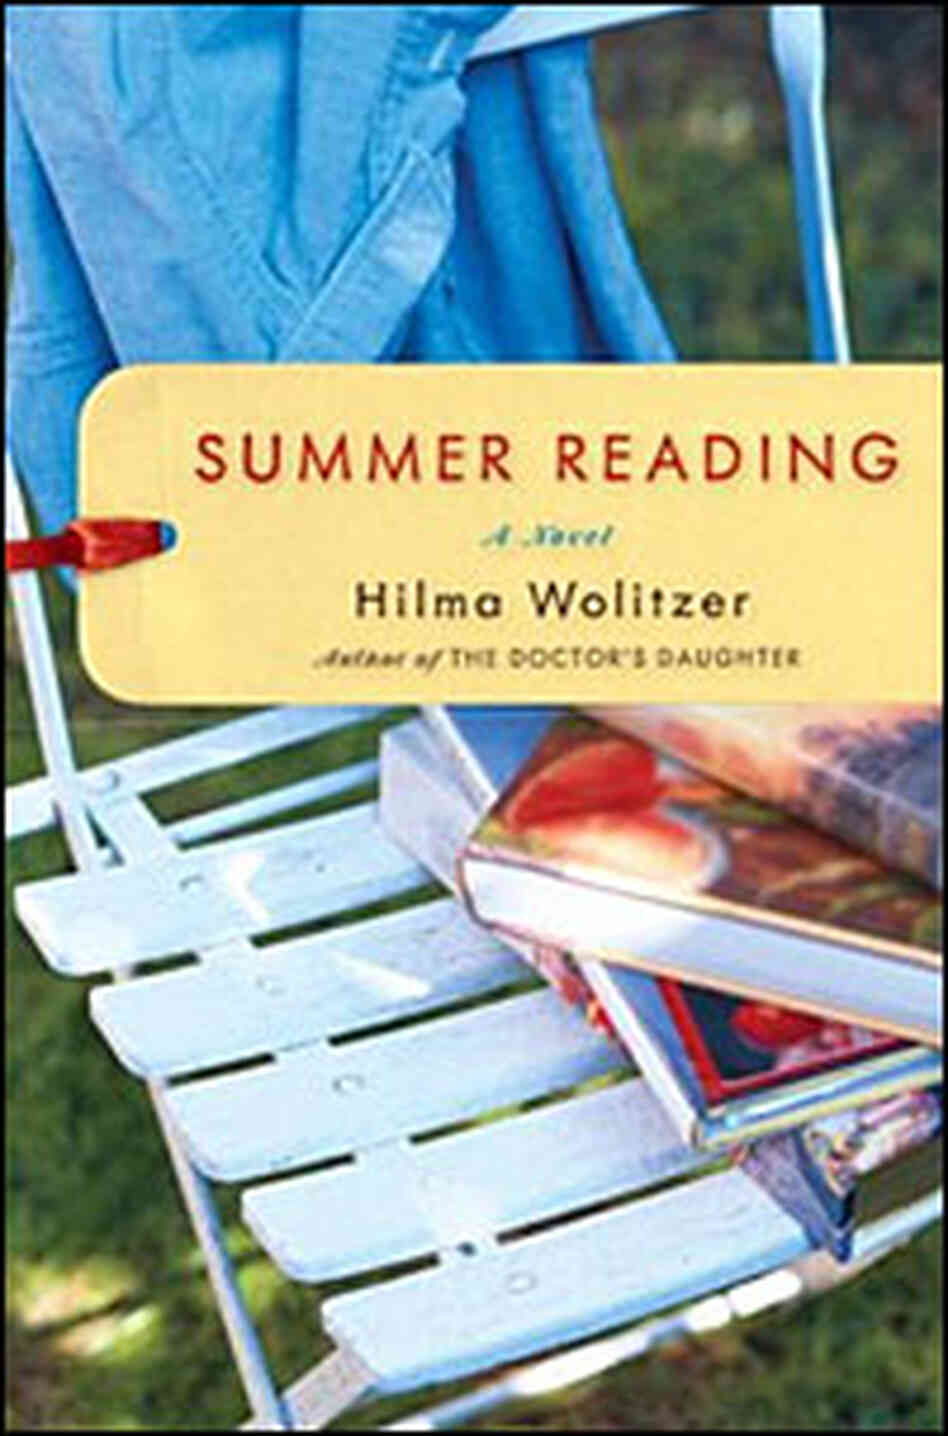 'Summer Reading' book cover